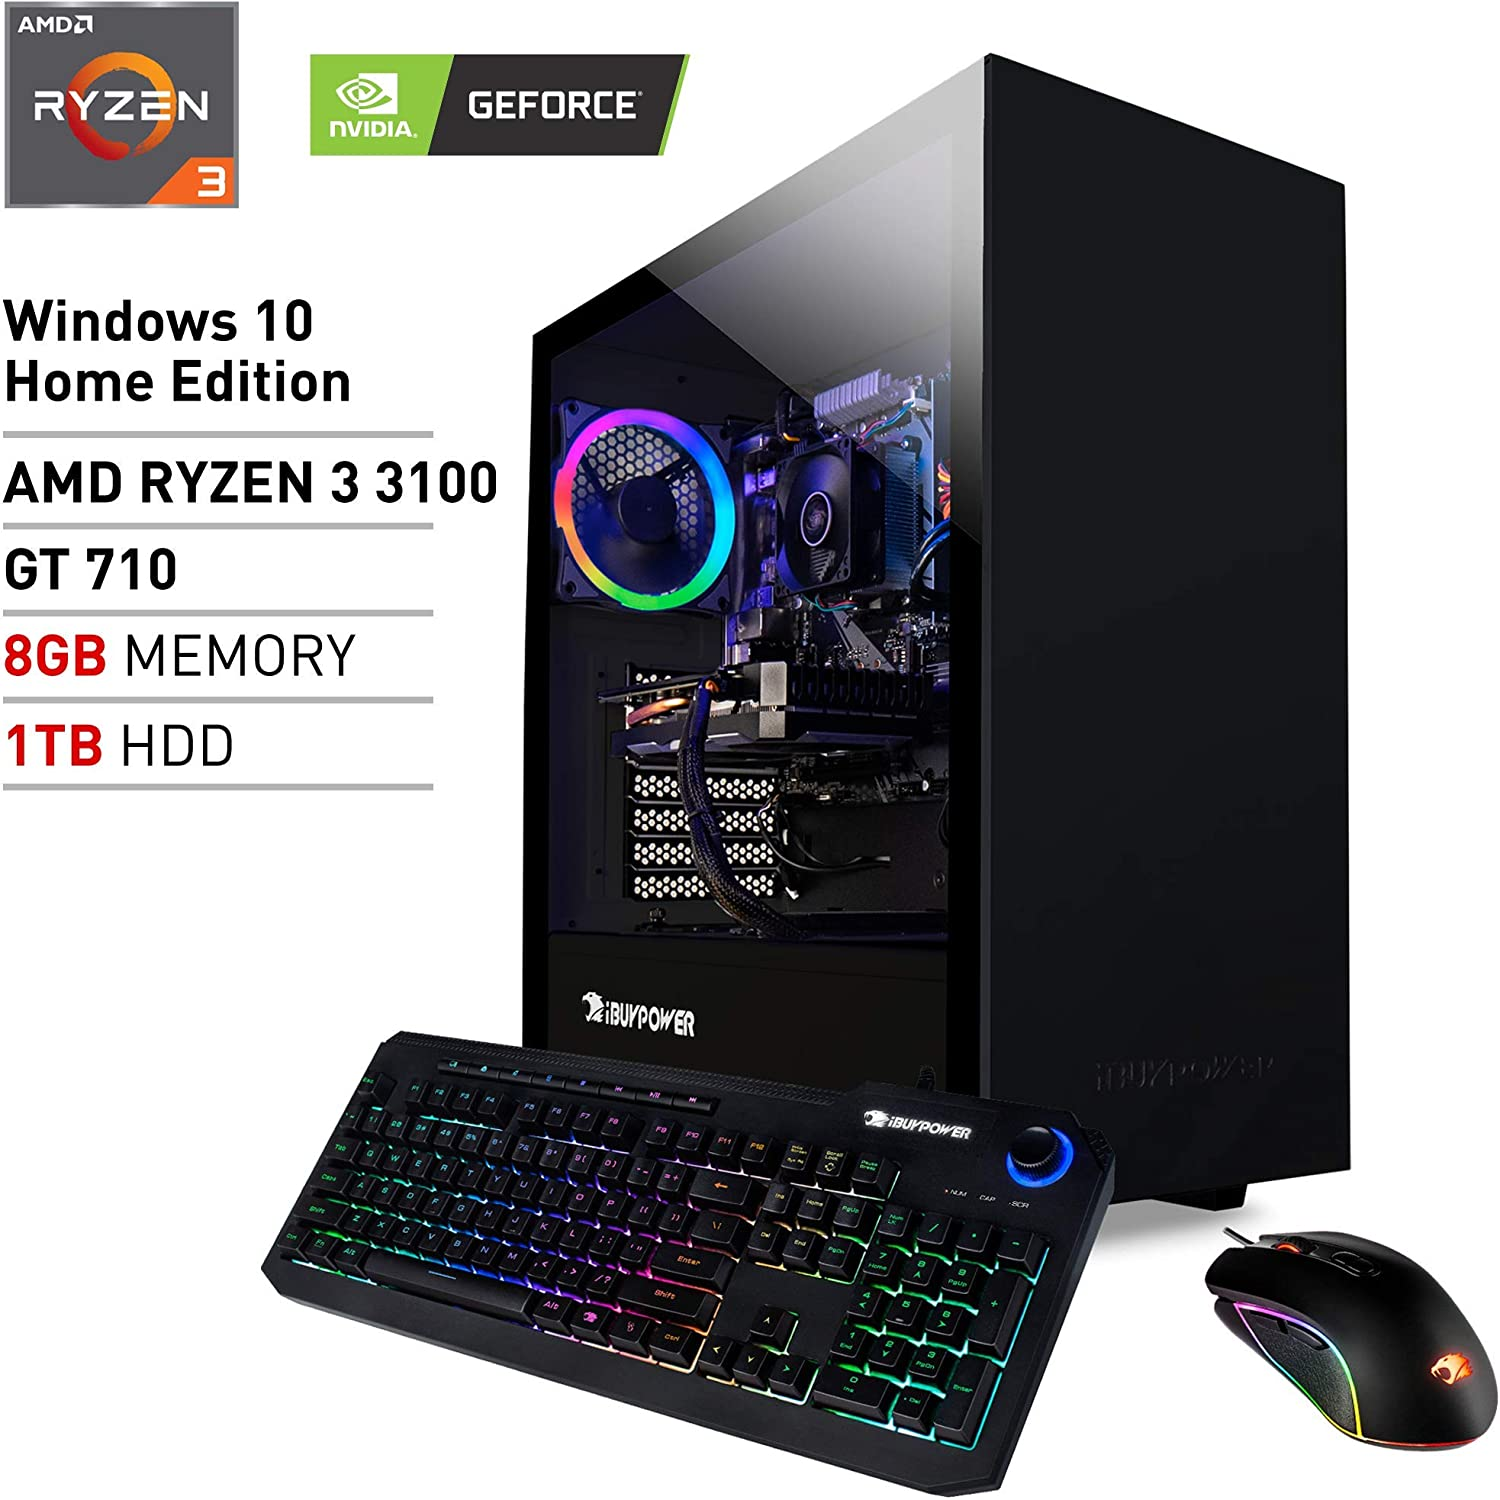 iBUYPOWER Pro Gaming PC Computer Desktop ARCB 108Av2 (AMD Ryzen 3 3100 3.6GHz, NVIDIA GT 710 1GB, 8GB DDR4 RAM, 1TB HDD, Wi-Fi Ready, Windows 10 Home)